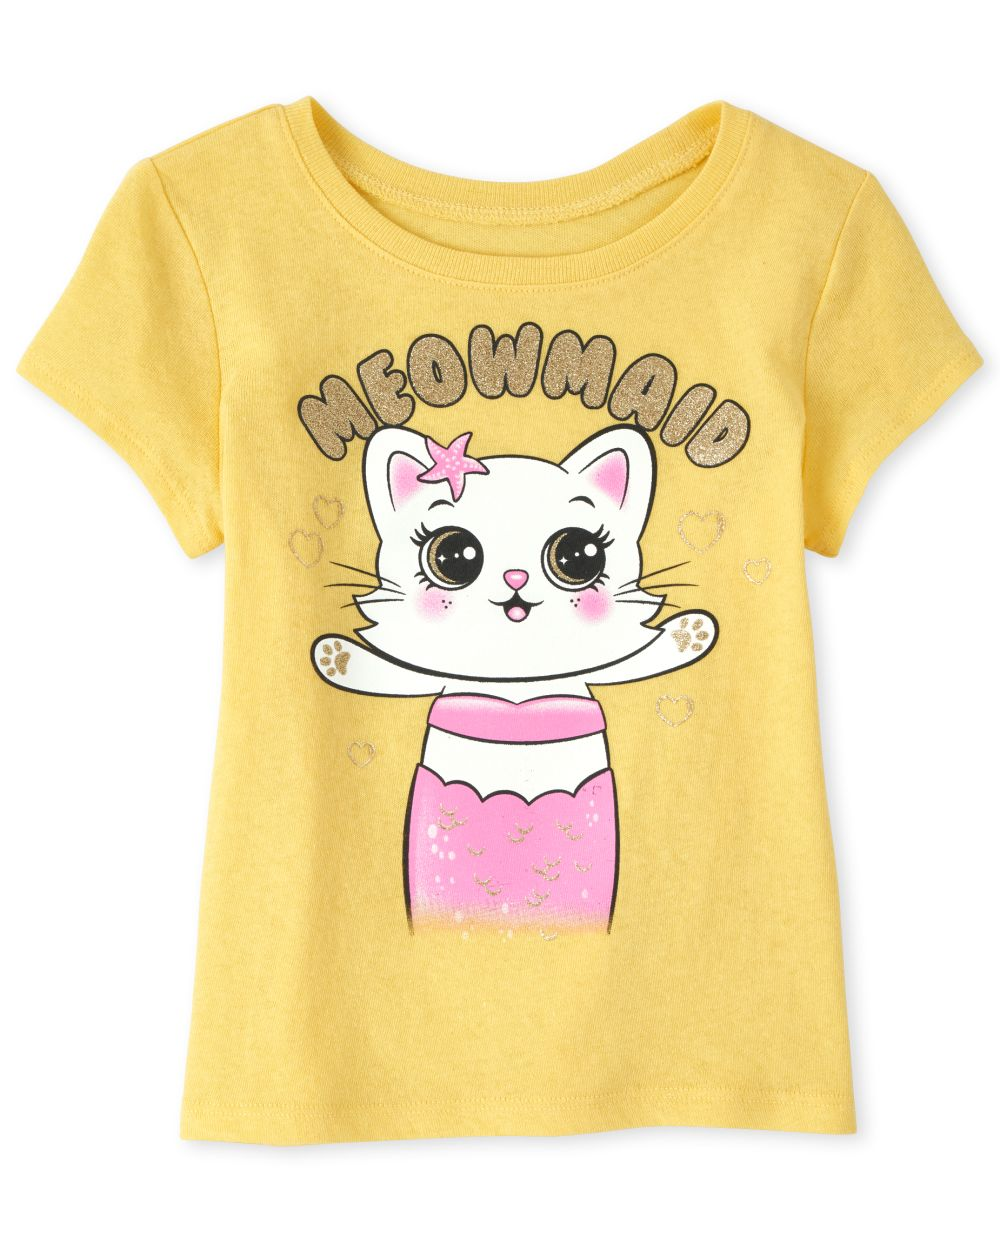 Baby And Toddler Girls Glitter Meowmaid Graphic Tee